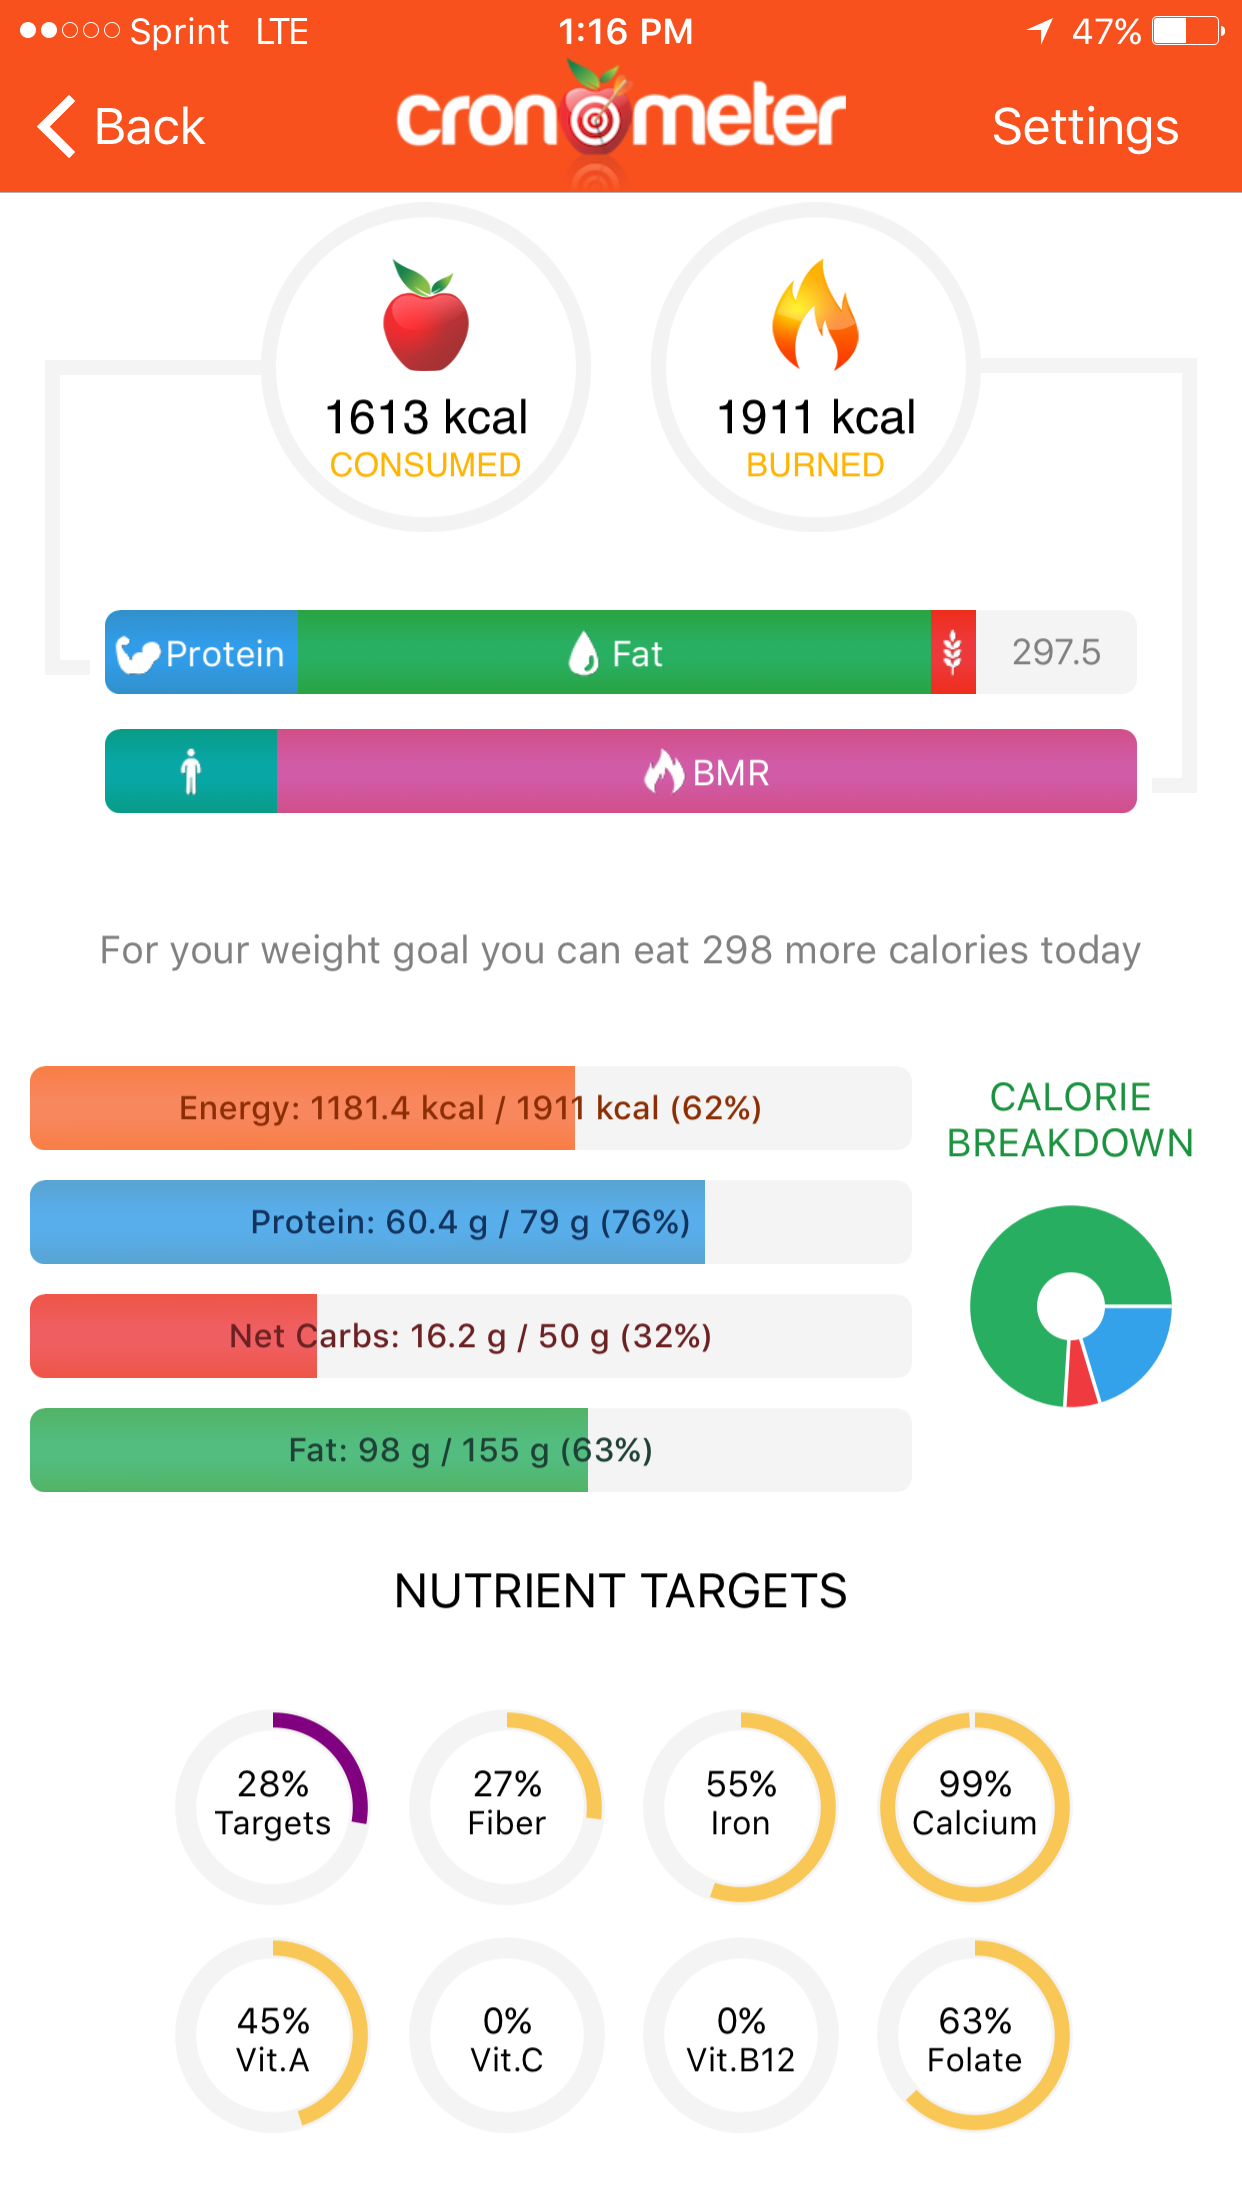 Nutrition Reports